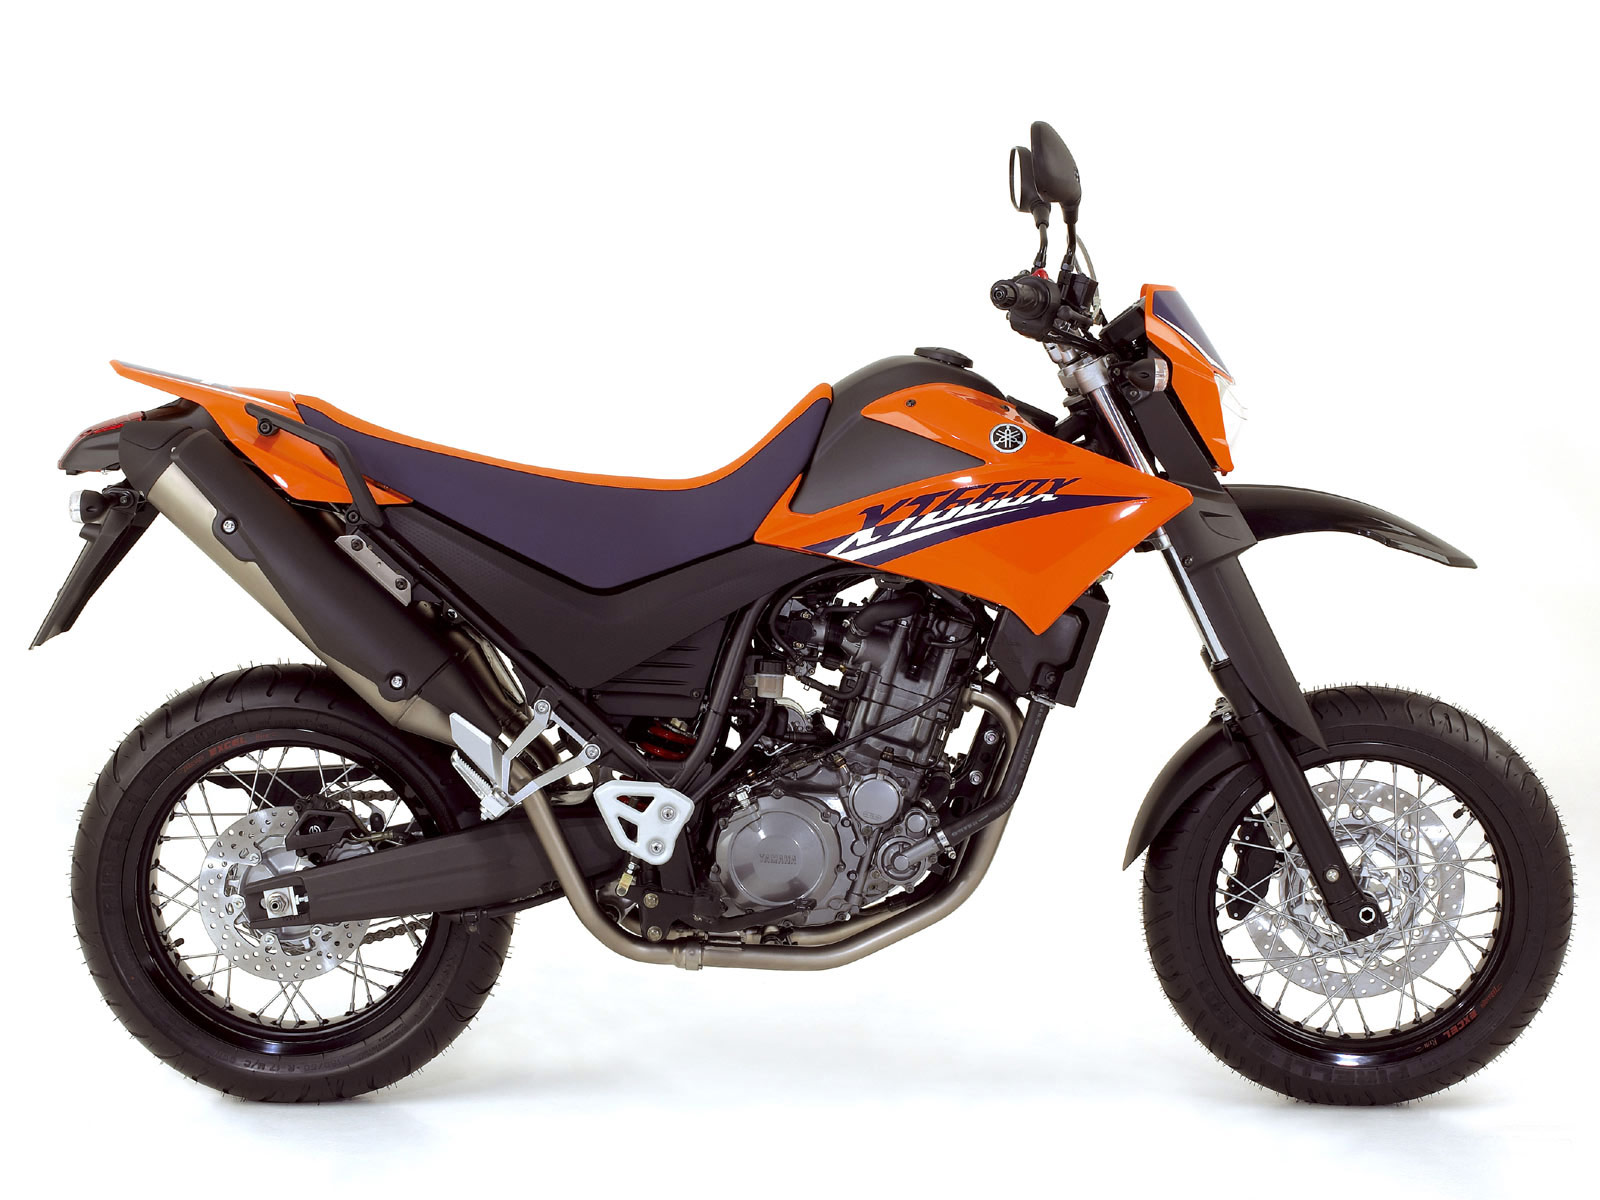 2007 YAMAHA XT660X Motorcycle Photos